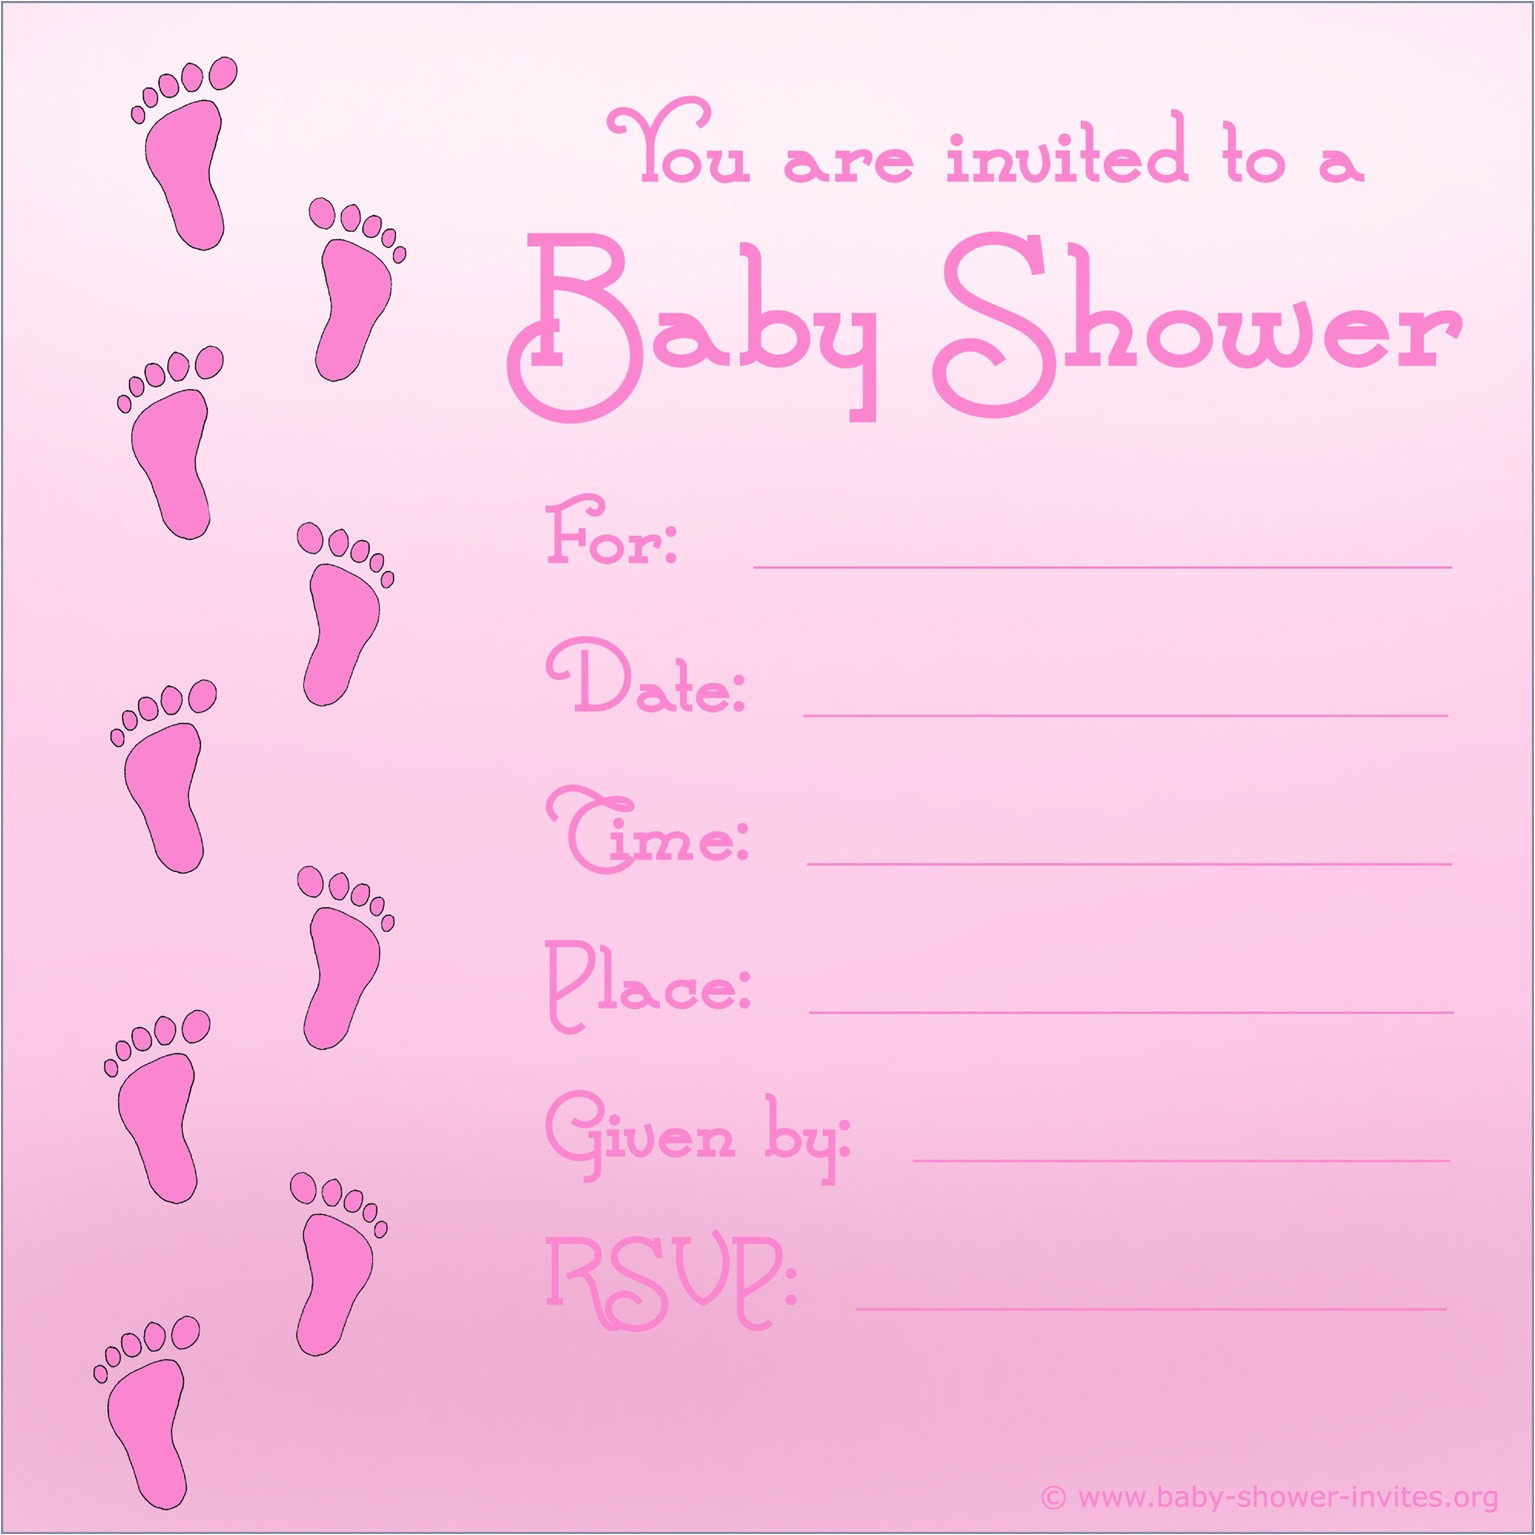 Create Your Own Baby Shower Invitations Free Printable Free Printable Baby Shower Invitations for Girls